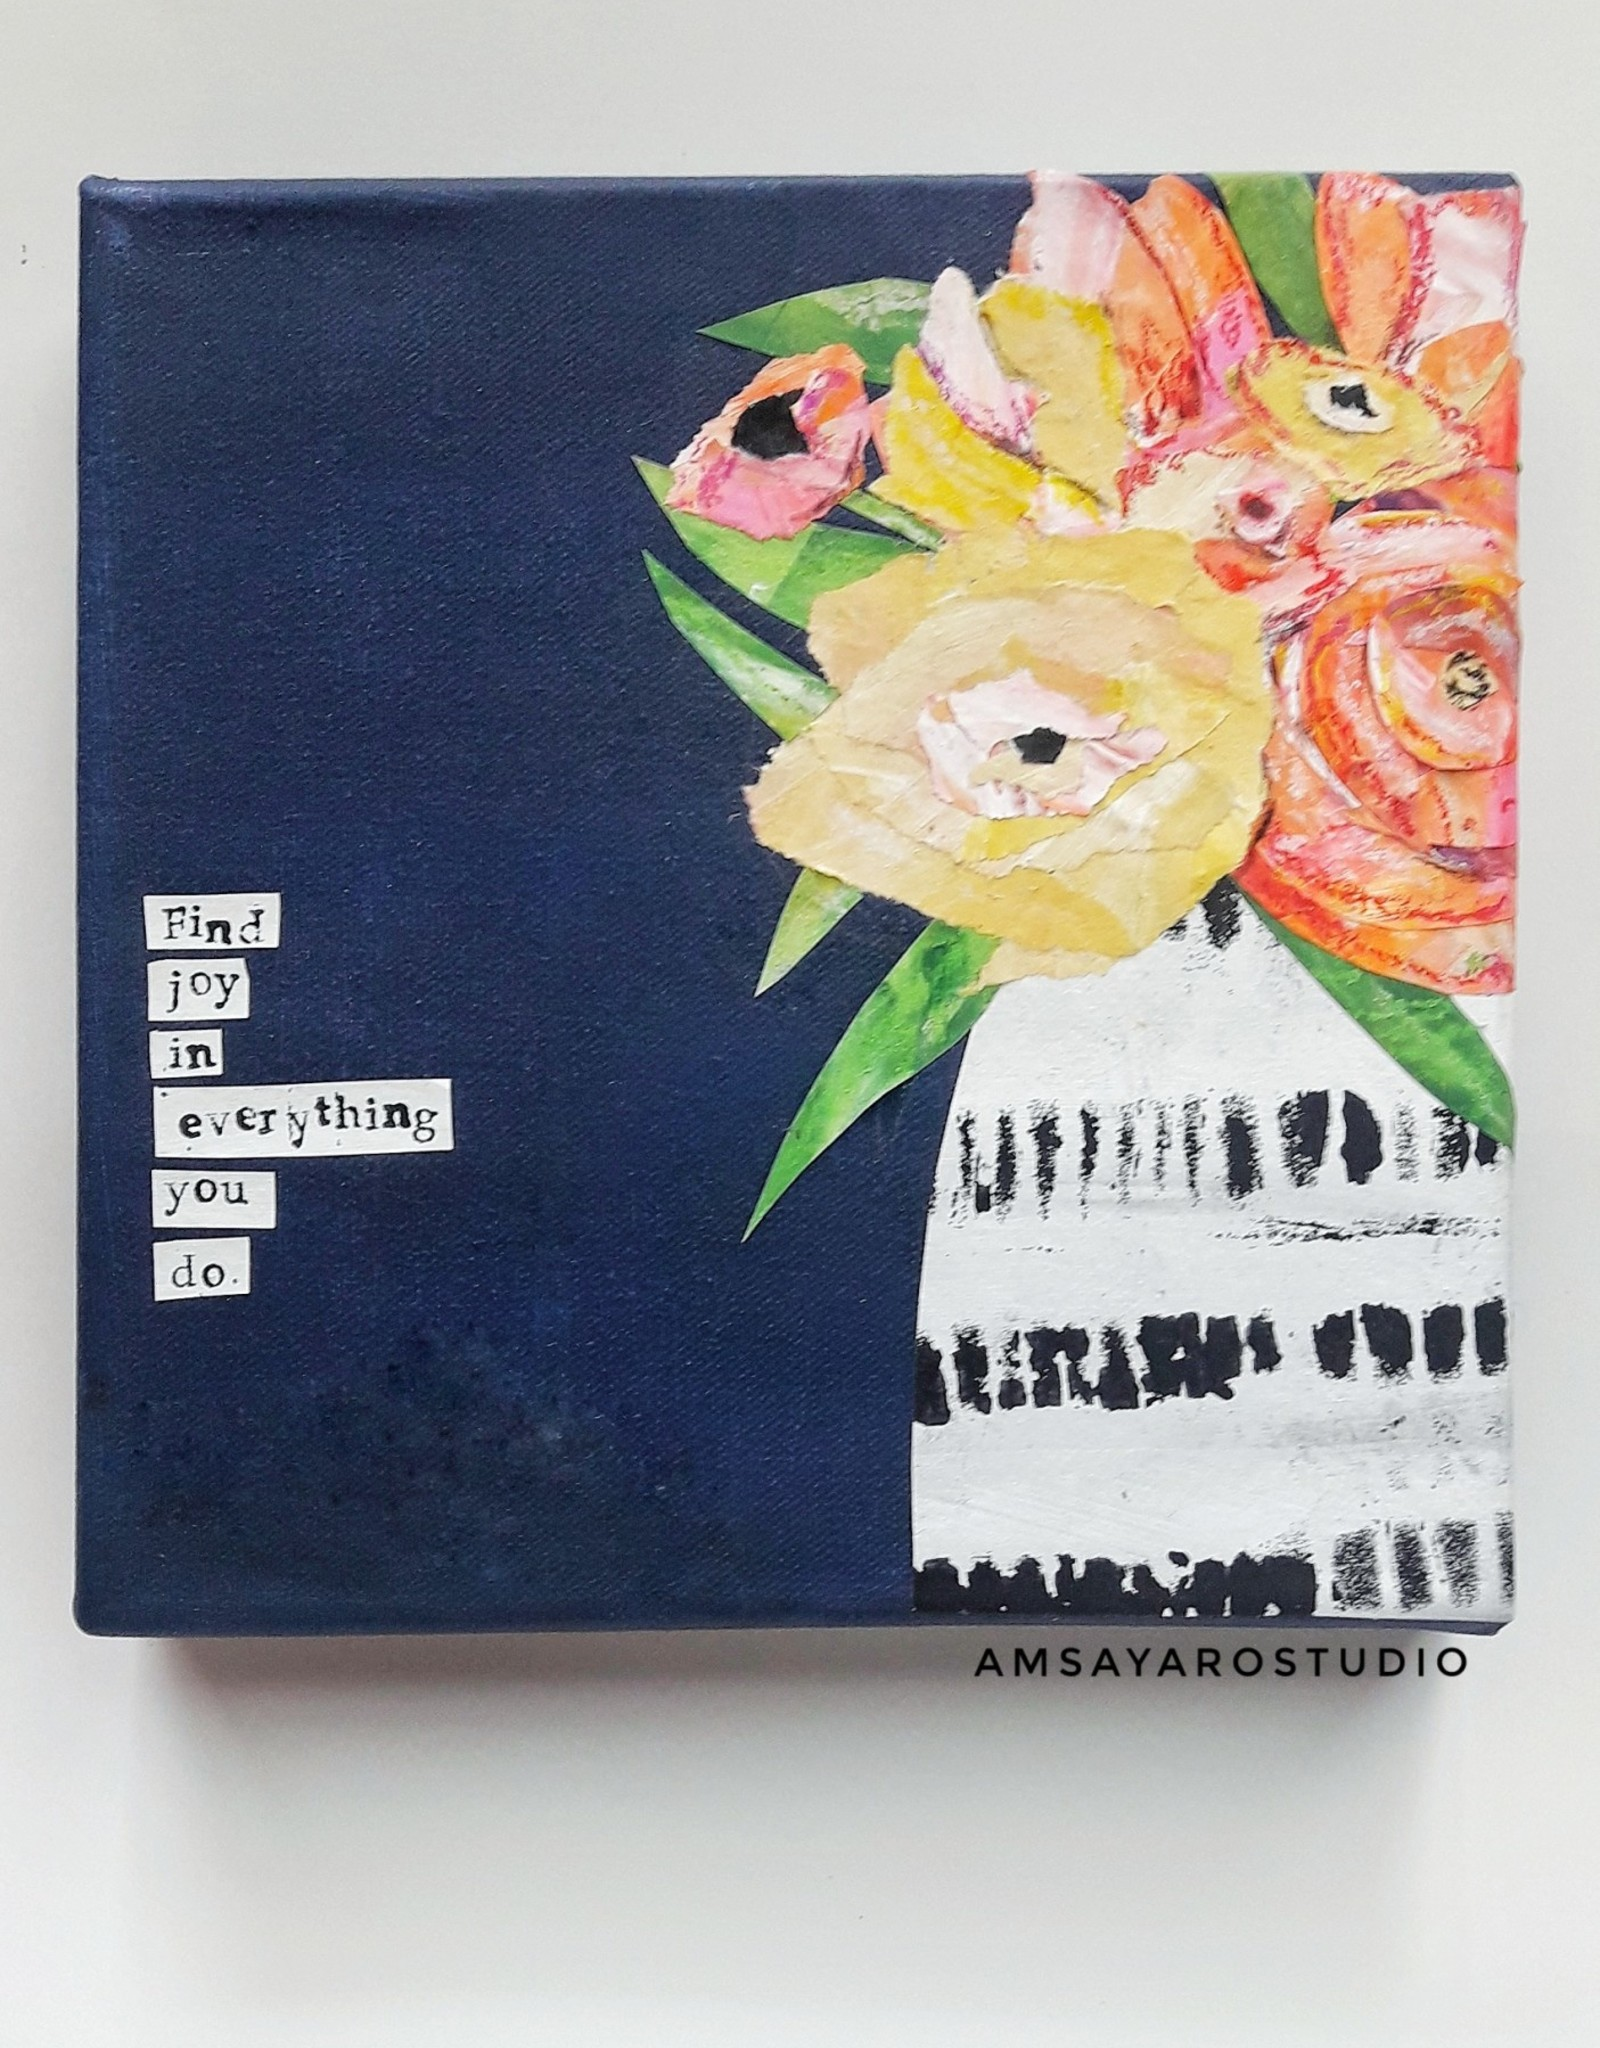 Amsa Art Class: Mixed Media Tues Aug 11 6-7:30 pm